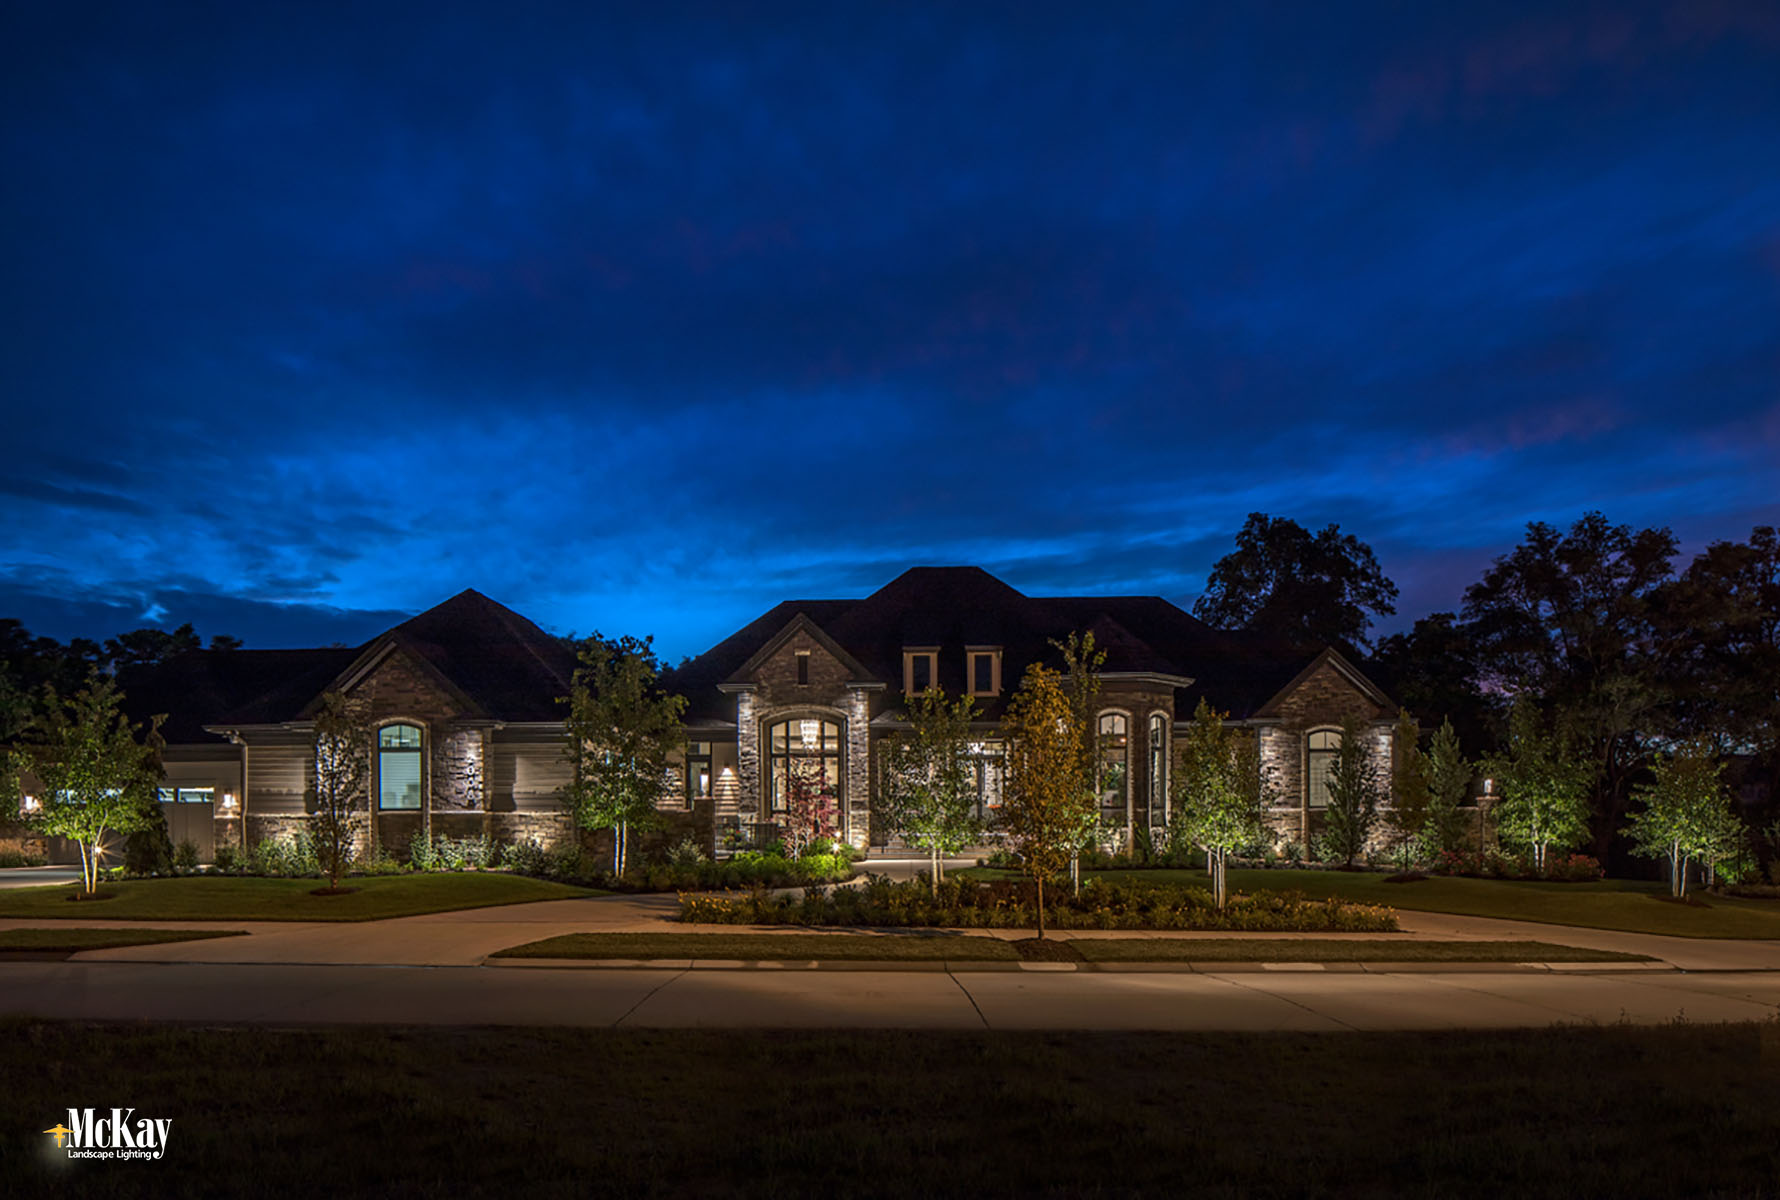 Professional Outdoor Lighting Services Omaha Nebraska - Low-Voltage Landscape Lighting Omaha Nebraska